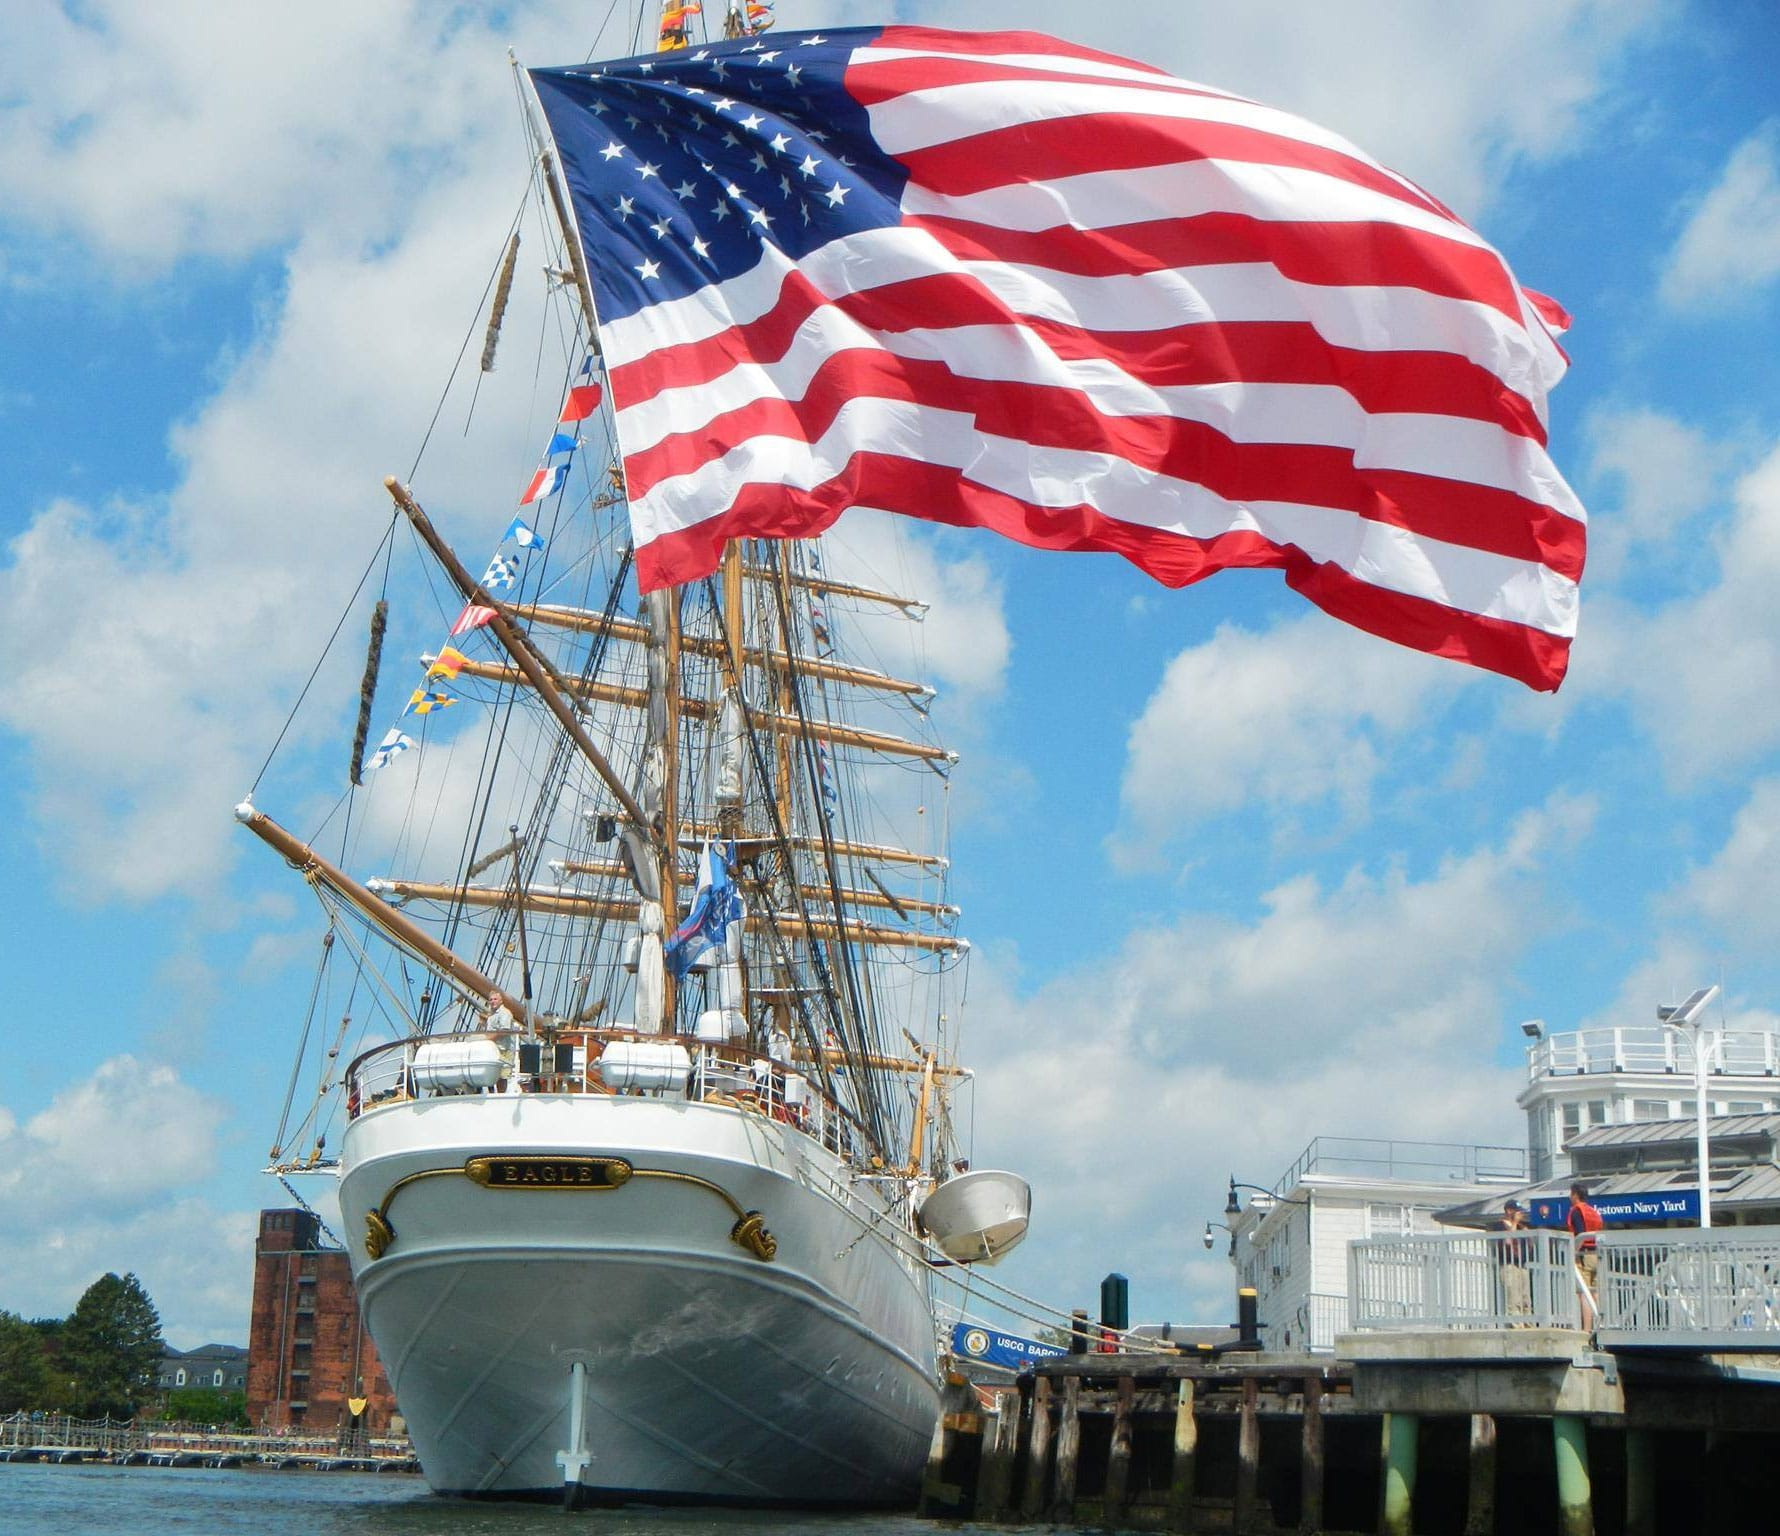 USCG fan Elizabeth Burgess shared this beautiful photo of Old Glory flying high and proud from the stern of United States Coast Guard Barque EAGLE in Boston during SailBoston.